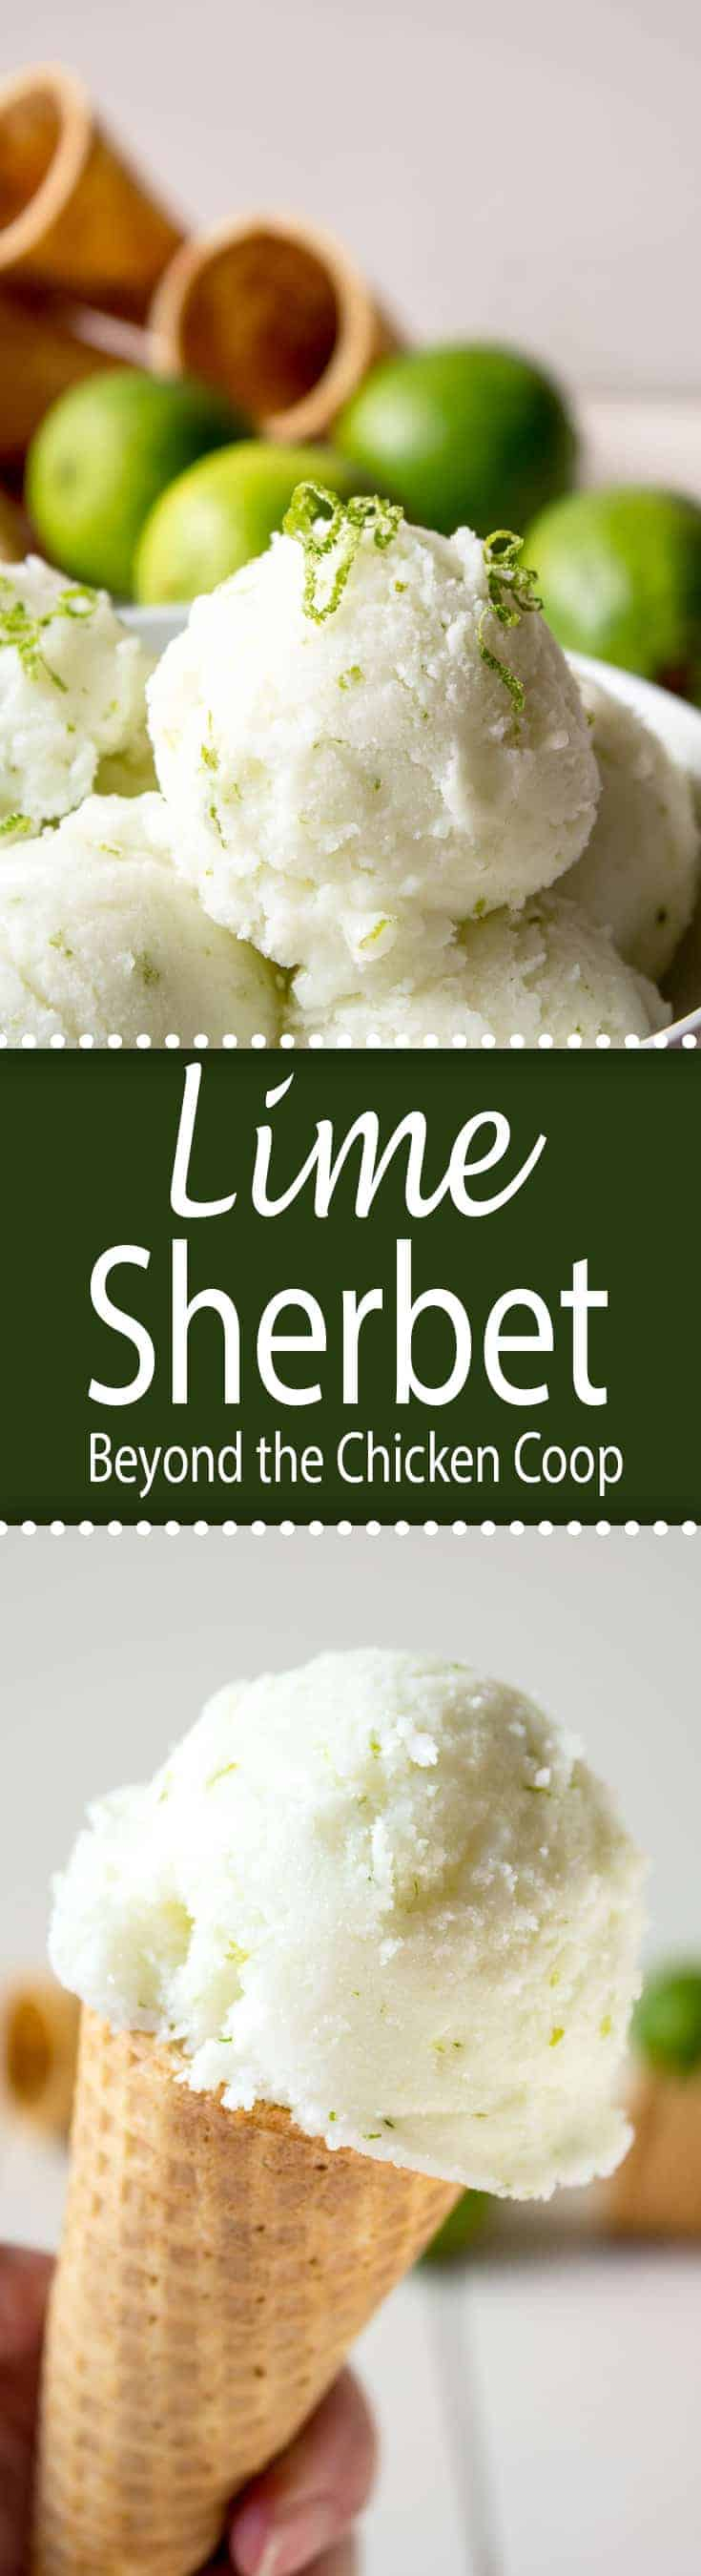 Homemade lime sherbet made with fresh squeezed limes, lime zest, sugar and milk. Pure lime flavor! #limes #sherbet #icecream #limesherbet #dessert #summertime